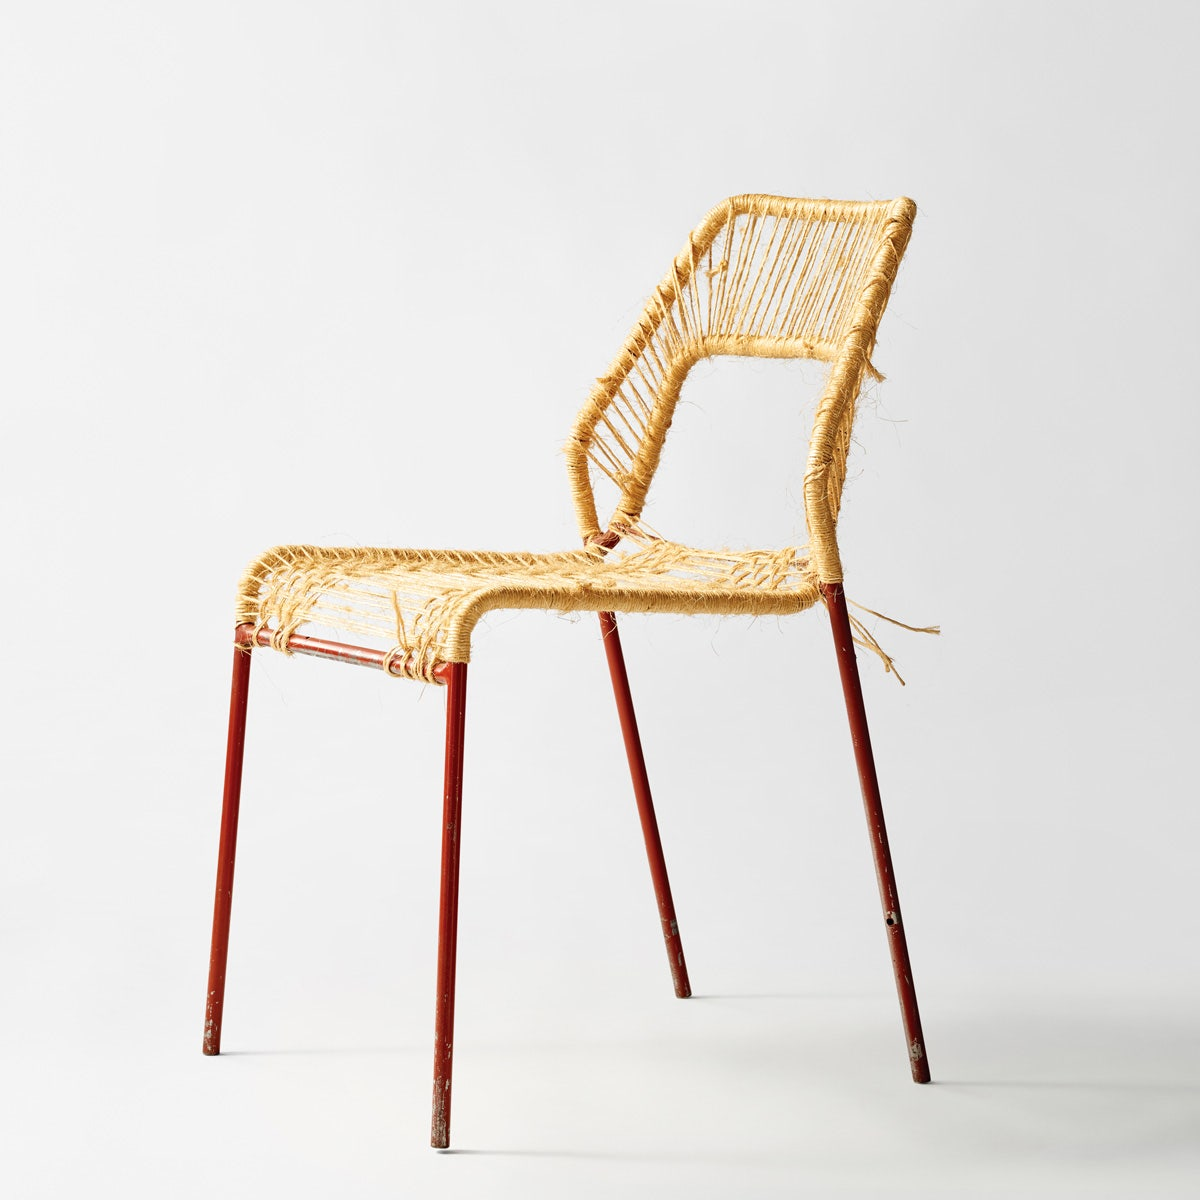 Hot Mesh Takes Its Inspiration From The Classic Café Chair Designed By  Thonet Way Back In 1859. You May Not Know It As The Thonet Chair (or Maybe  You Do!), ...